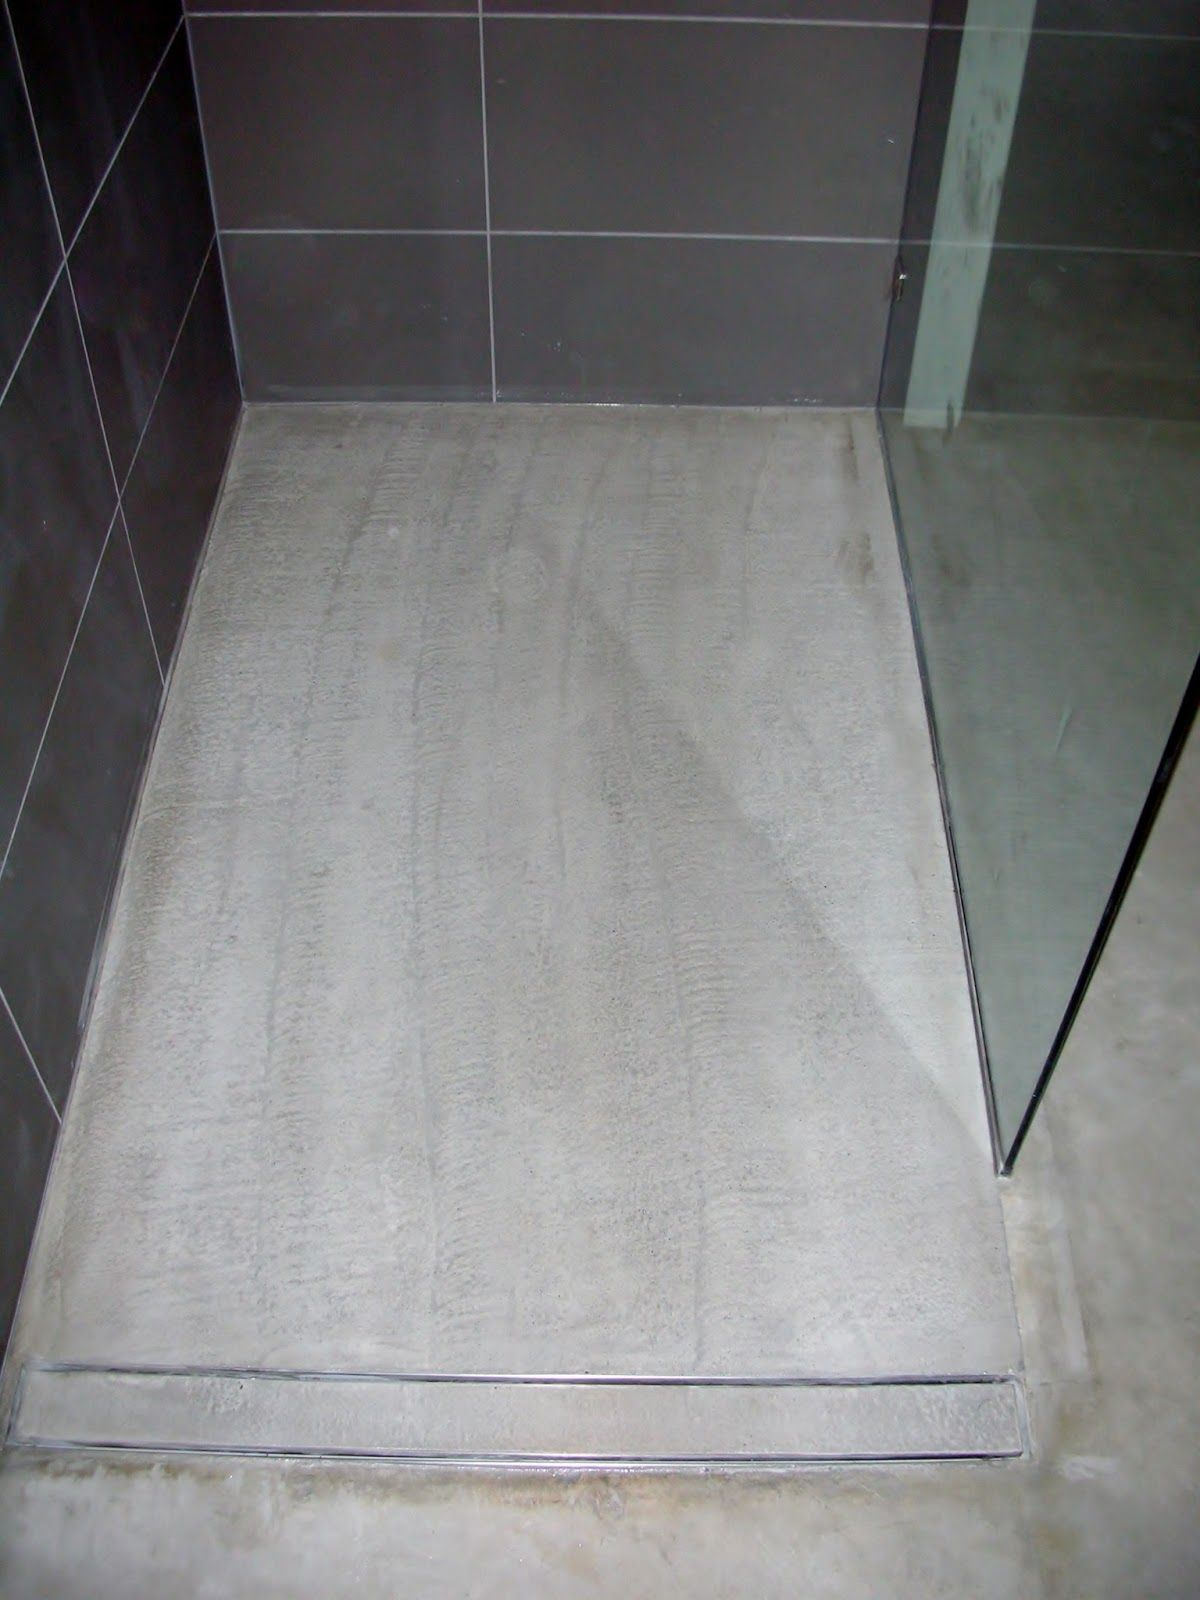 Modernconcreteshowerslottroughdrain modeconcrete1g shower floor drain come in various types and can be easily replaced with a quick renewalsquare shower floor drain is ideal for floors shower dailygadgetfo Choice Image